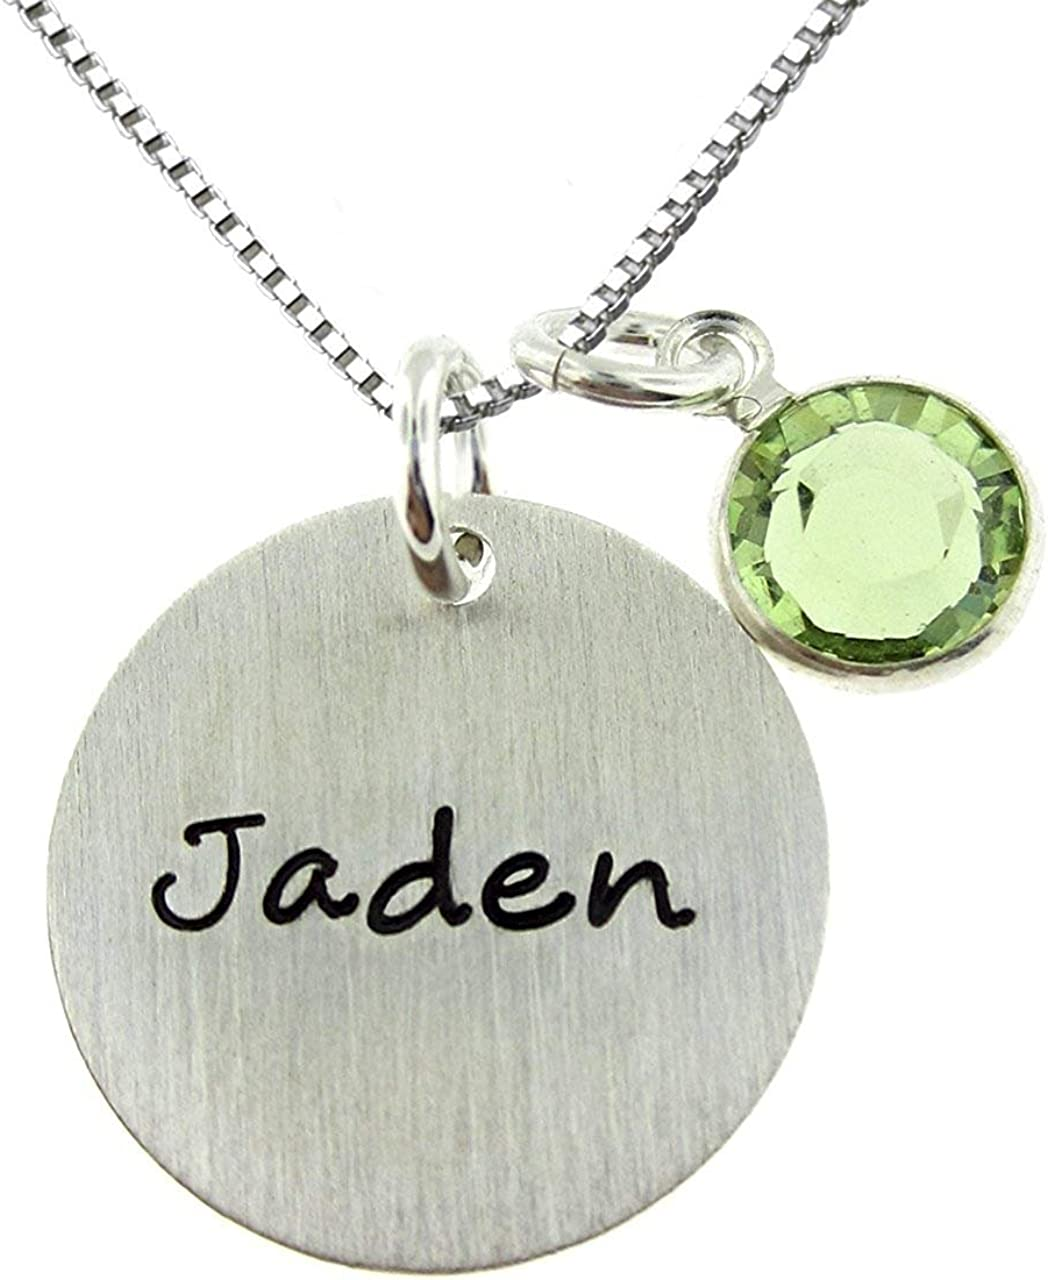 Shineyou Personalized Name Family//Kids//Women//Men//Pet Photo Silver Necklace Pendant Chain Customized Best Gifts